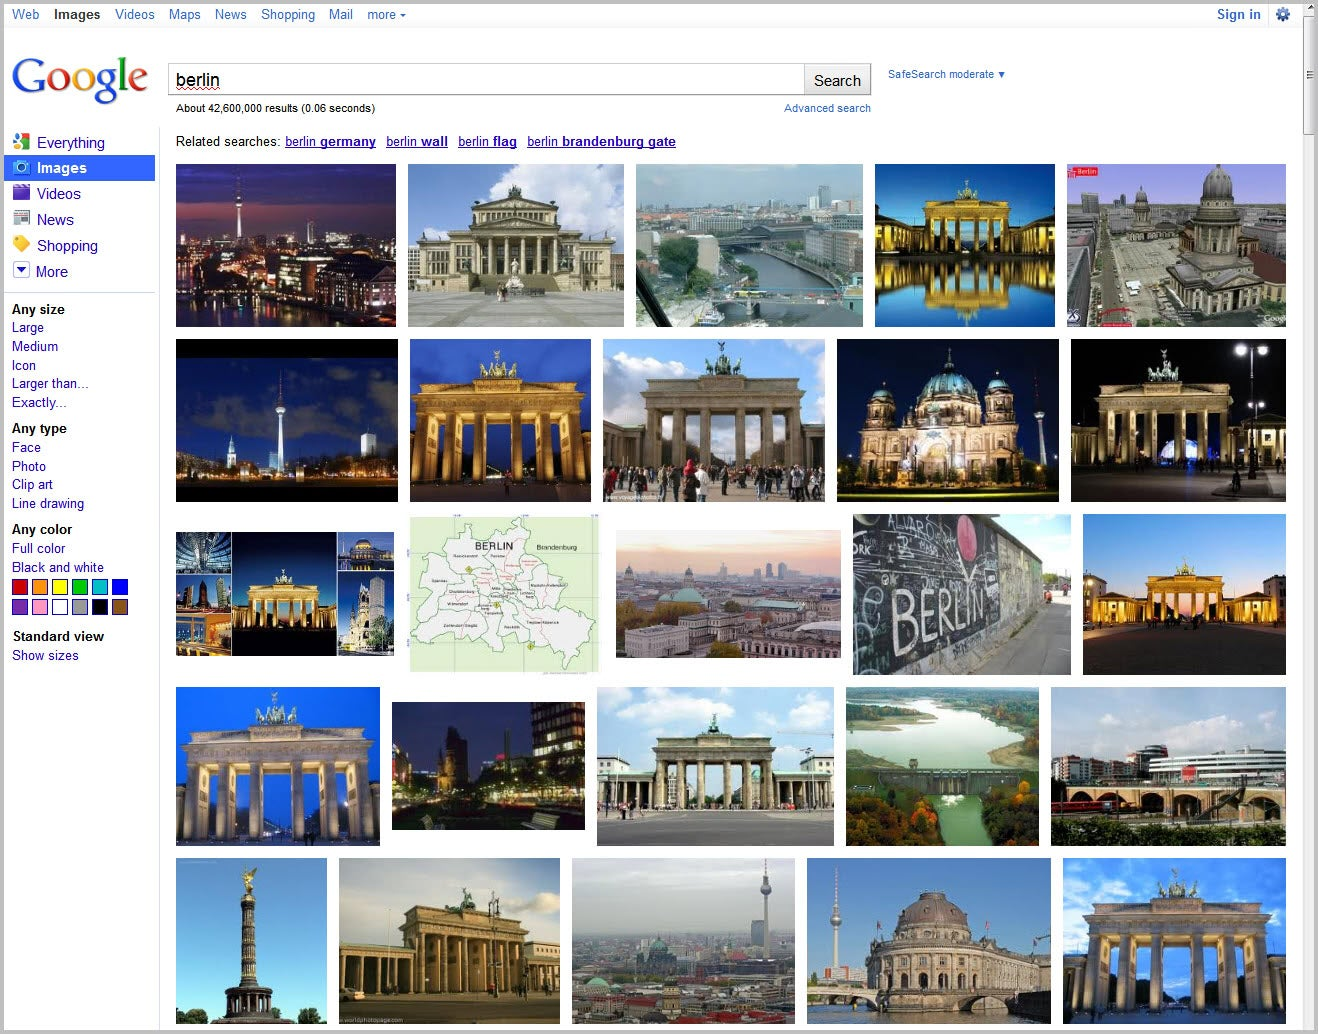 Google Image Search Full